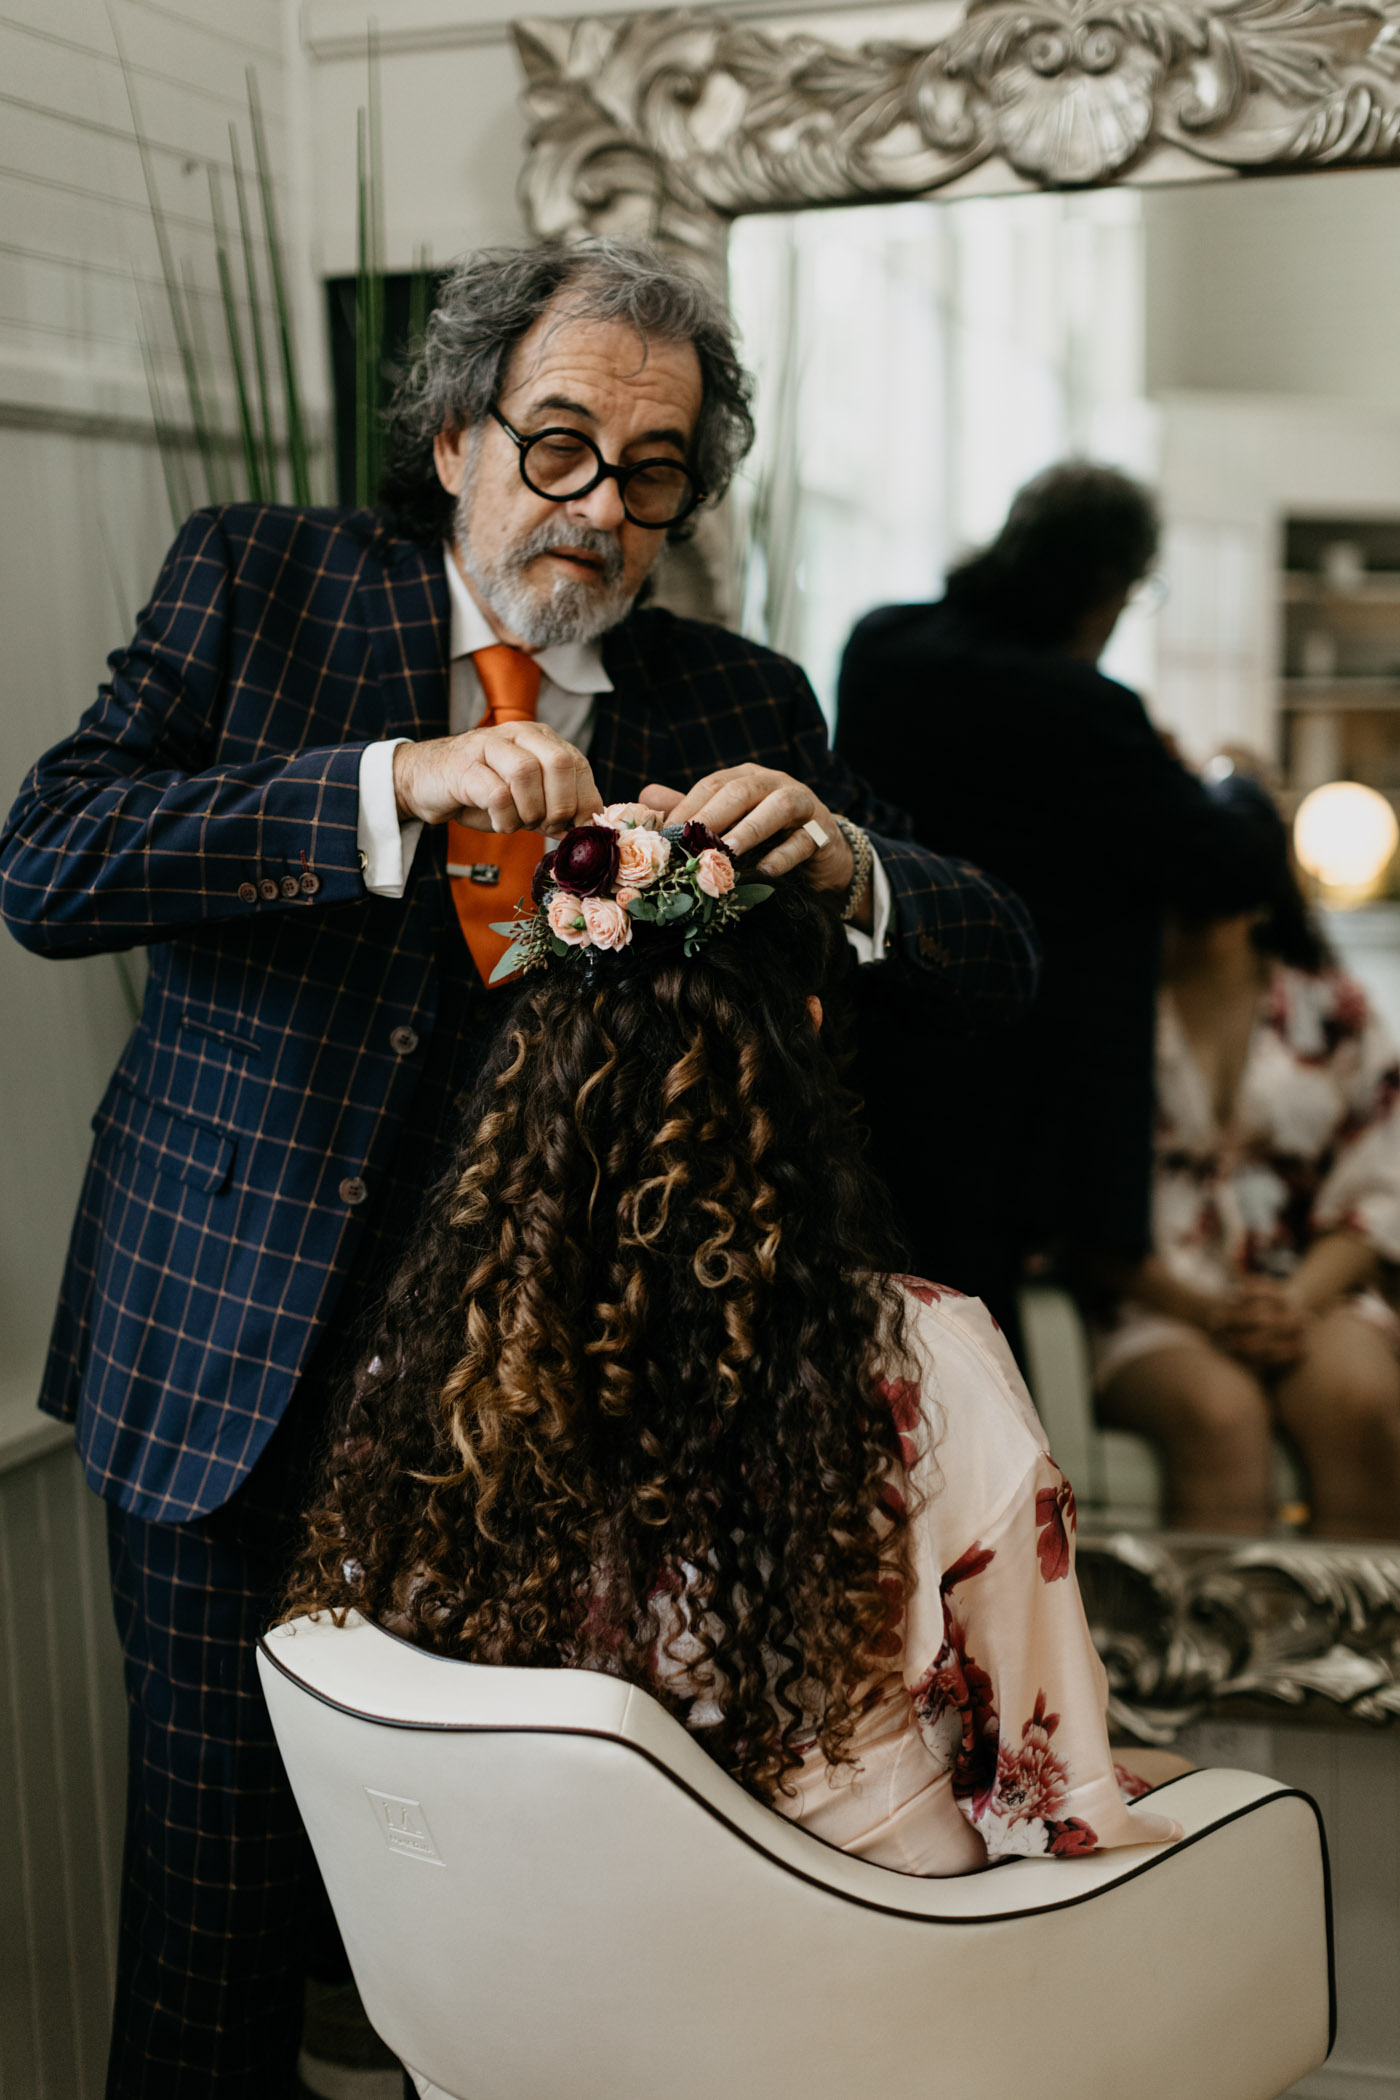 Bride getting florals put in her hair before her wedding ceremony